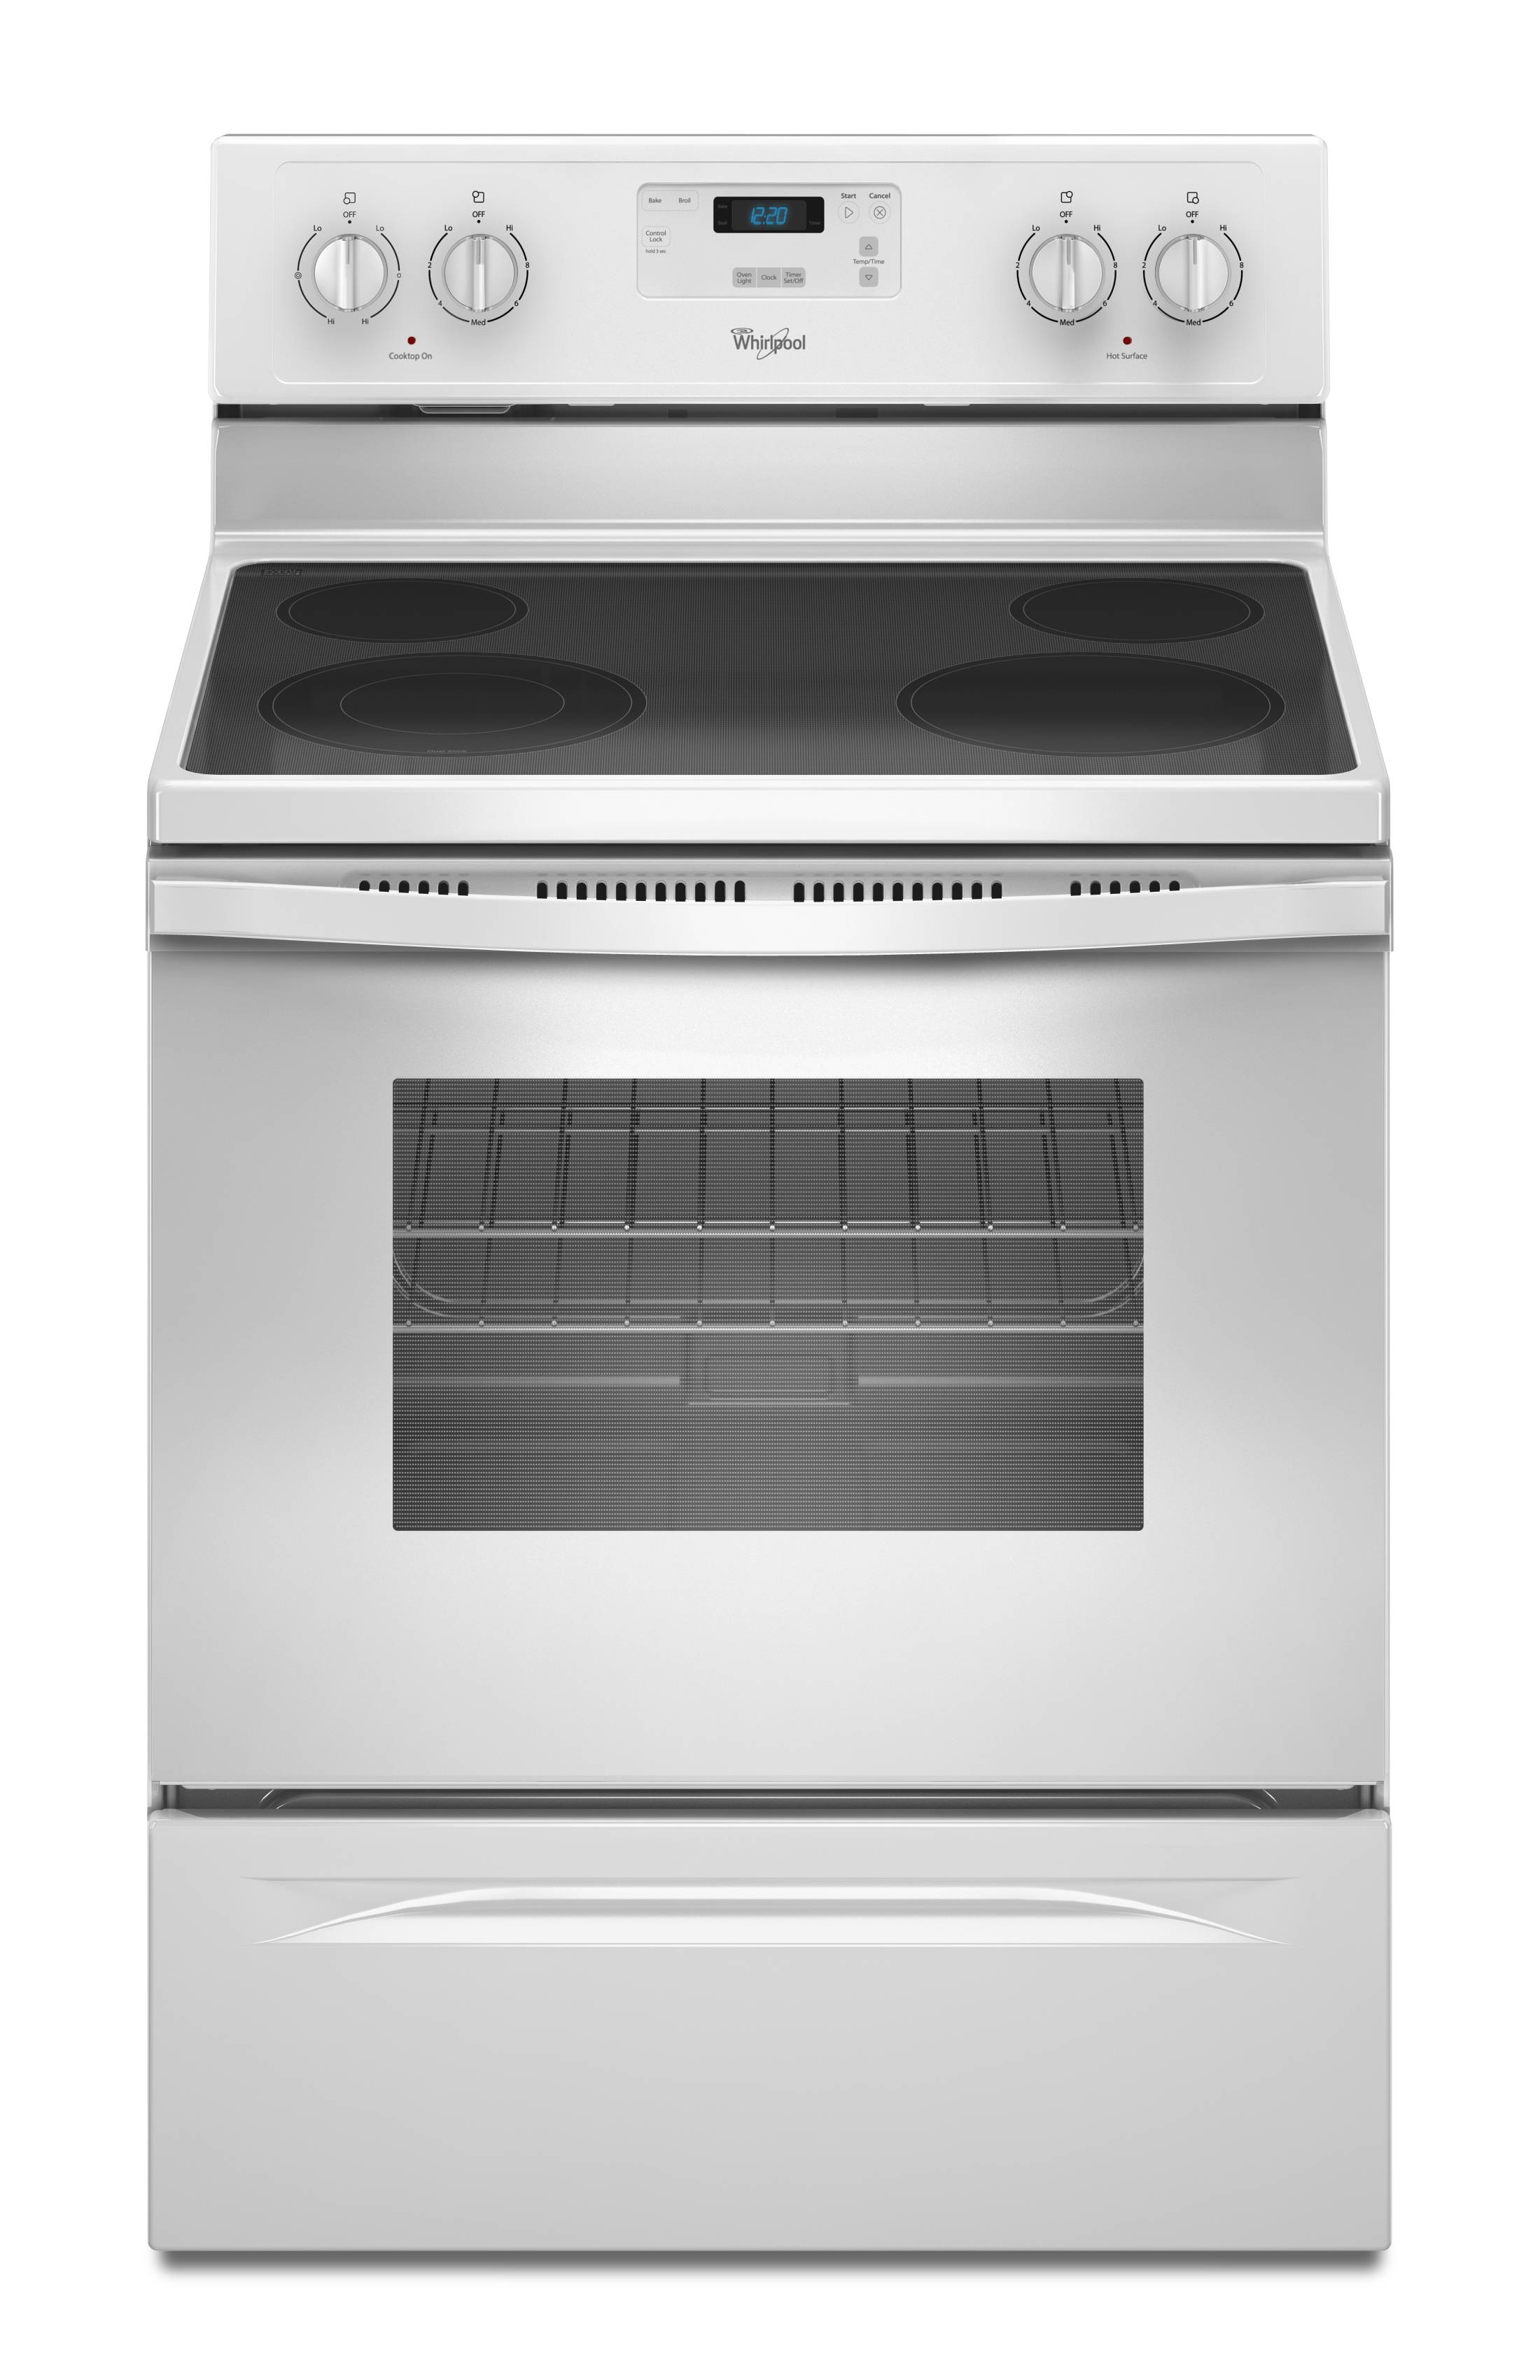 white electric range. Whirlpool Smooth Surface 4.8-cu Ft Freestanding Electric Range (White)  (Common: White Electric Range E